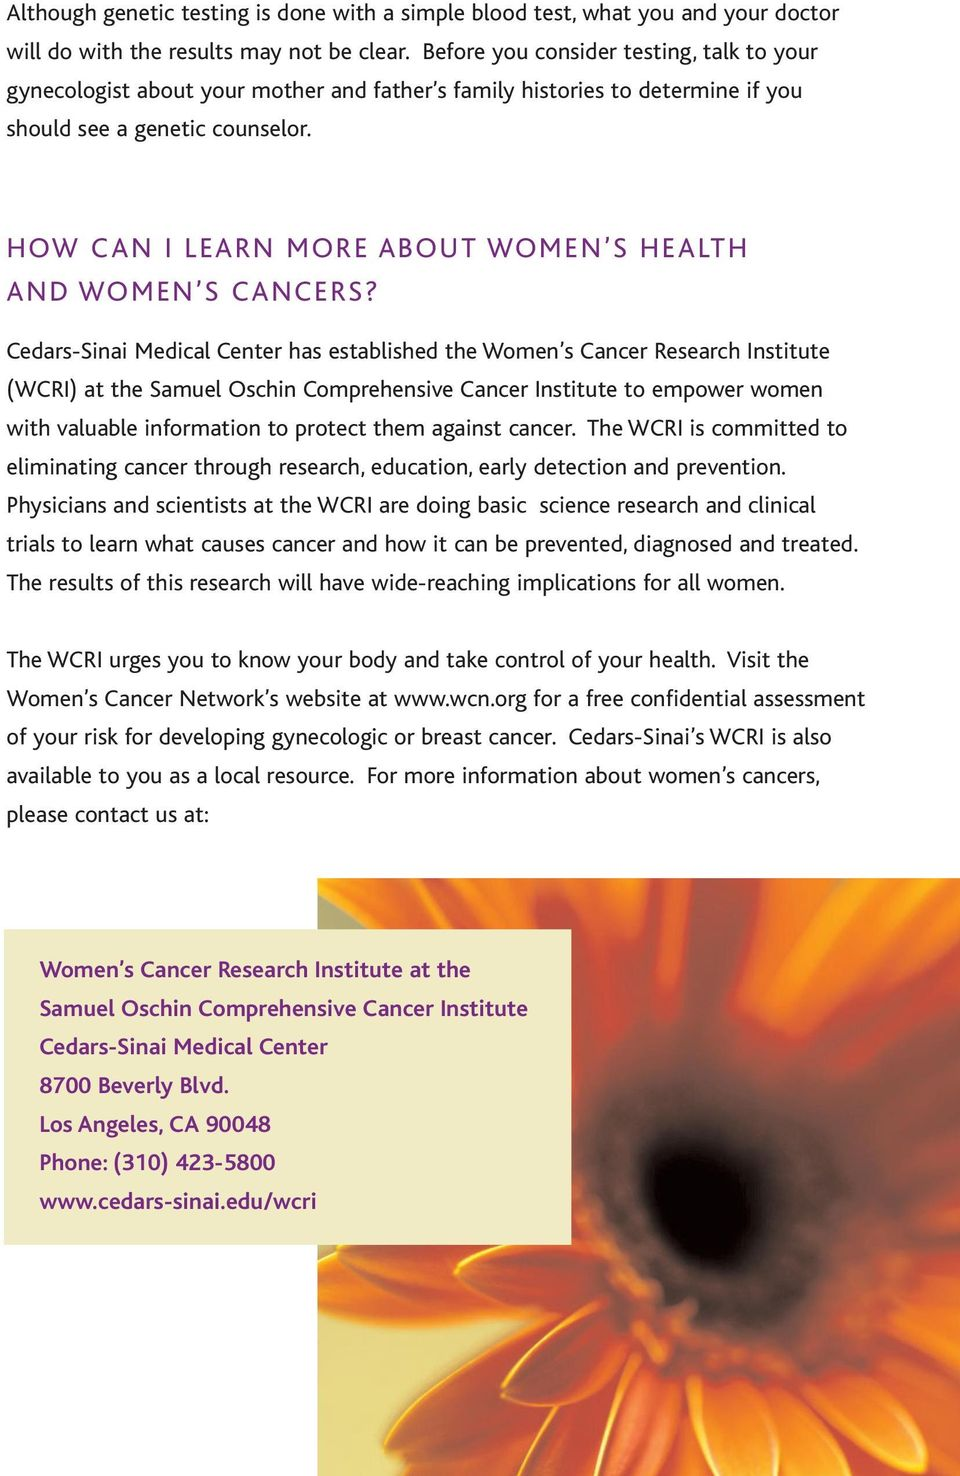 HOW CAN I LEARN MORE ABOUT WOMEN S HEALTH AND WOMEN S CANCERS?